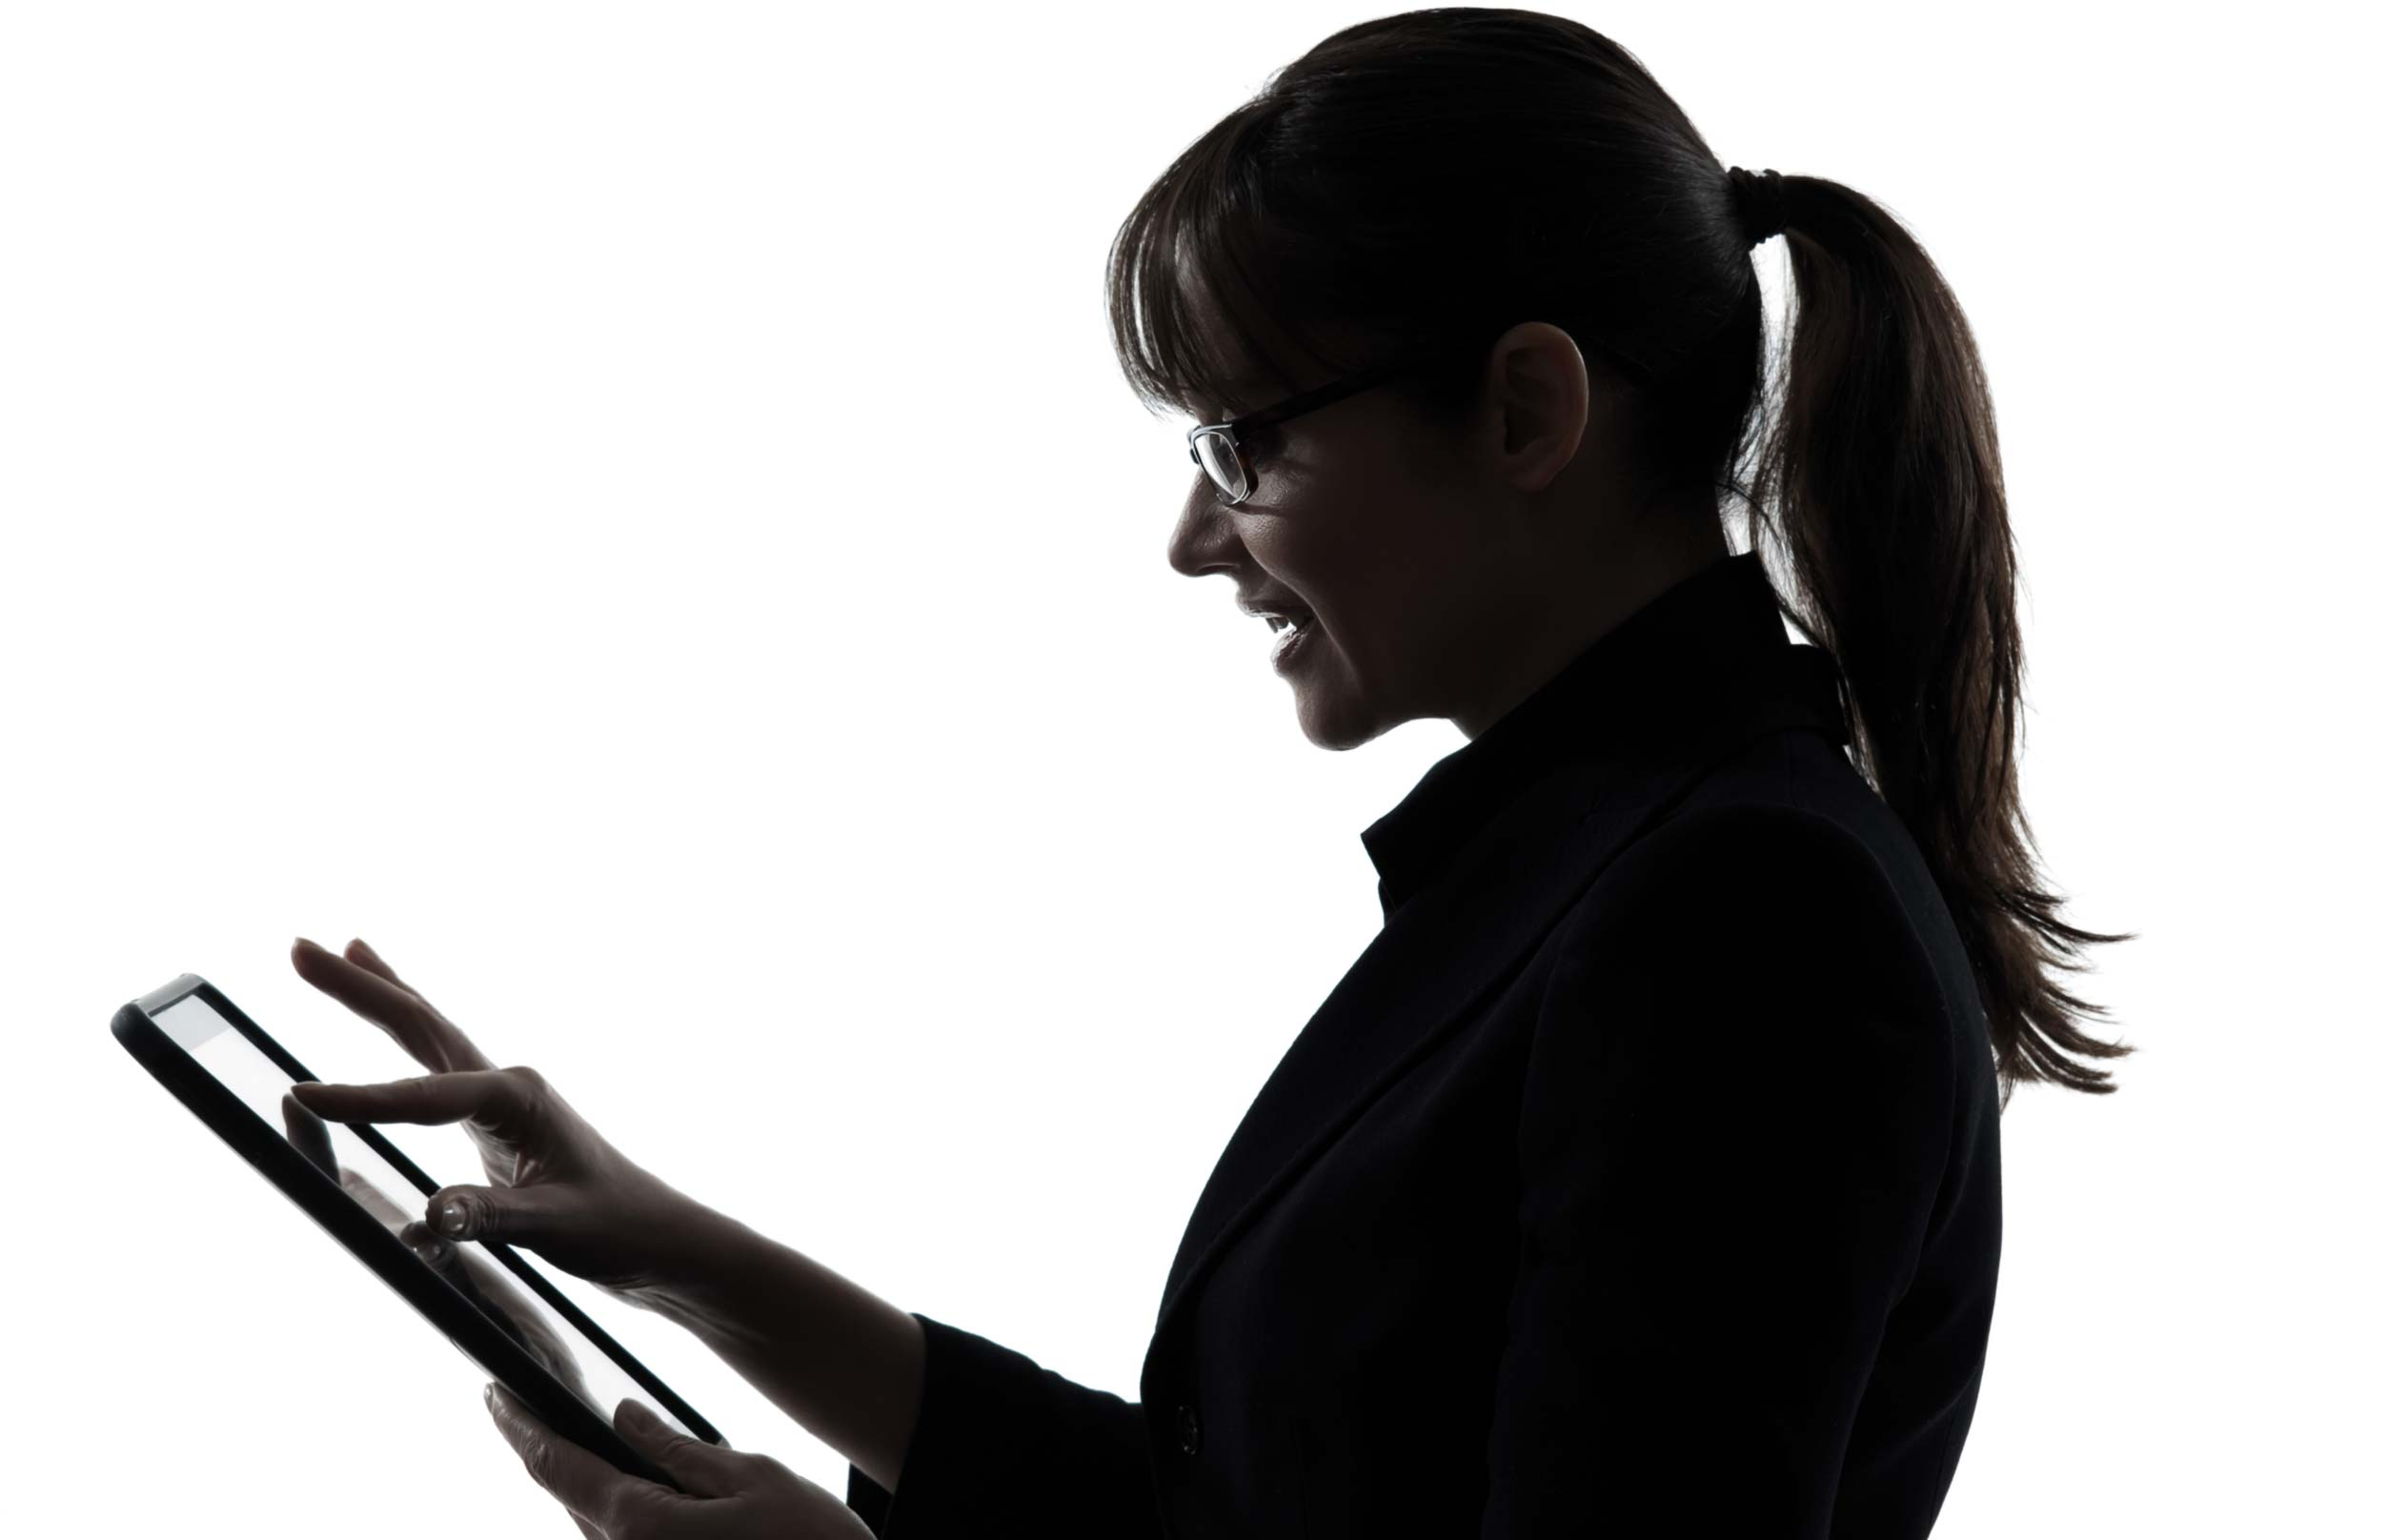 Physiotherapy Solutions - image of woman researching on iPad